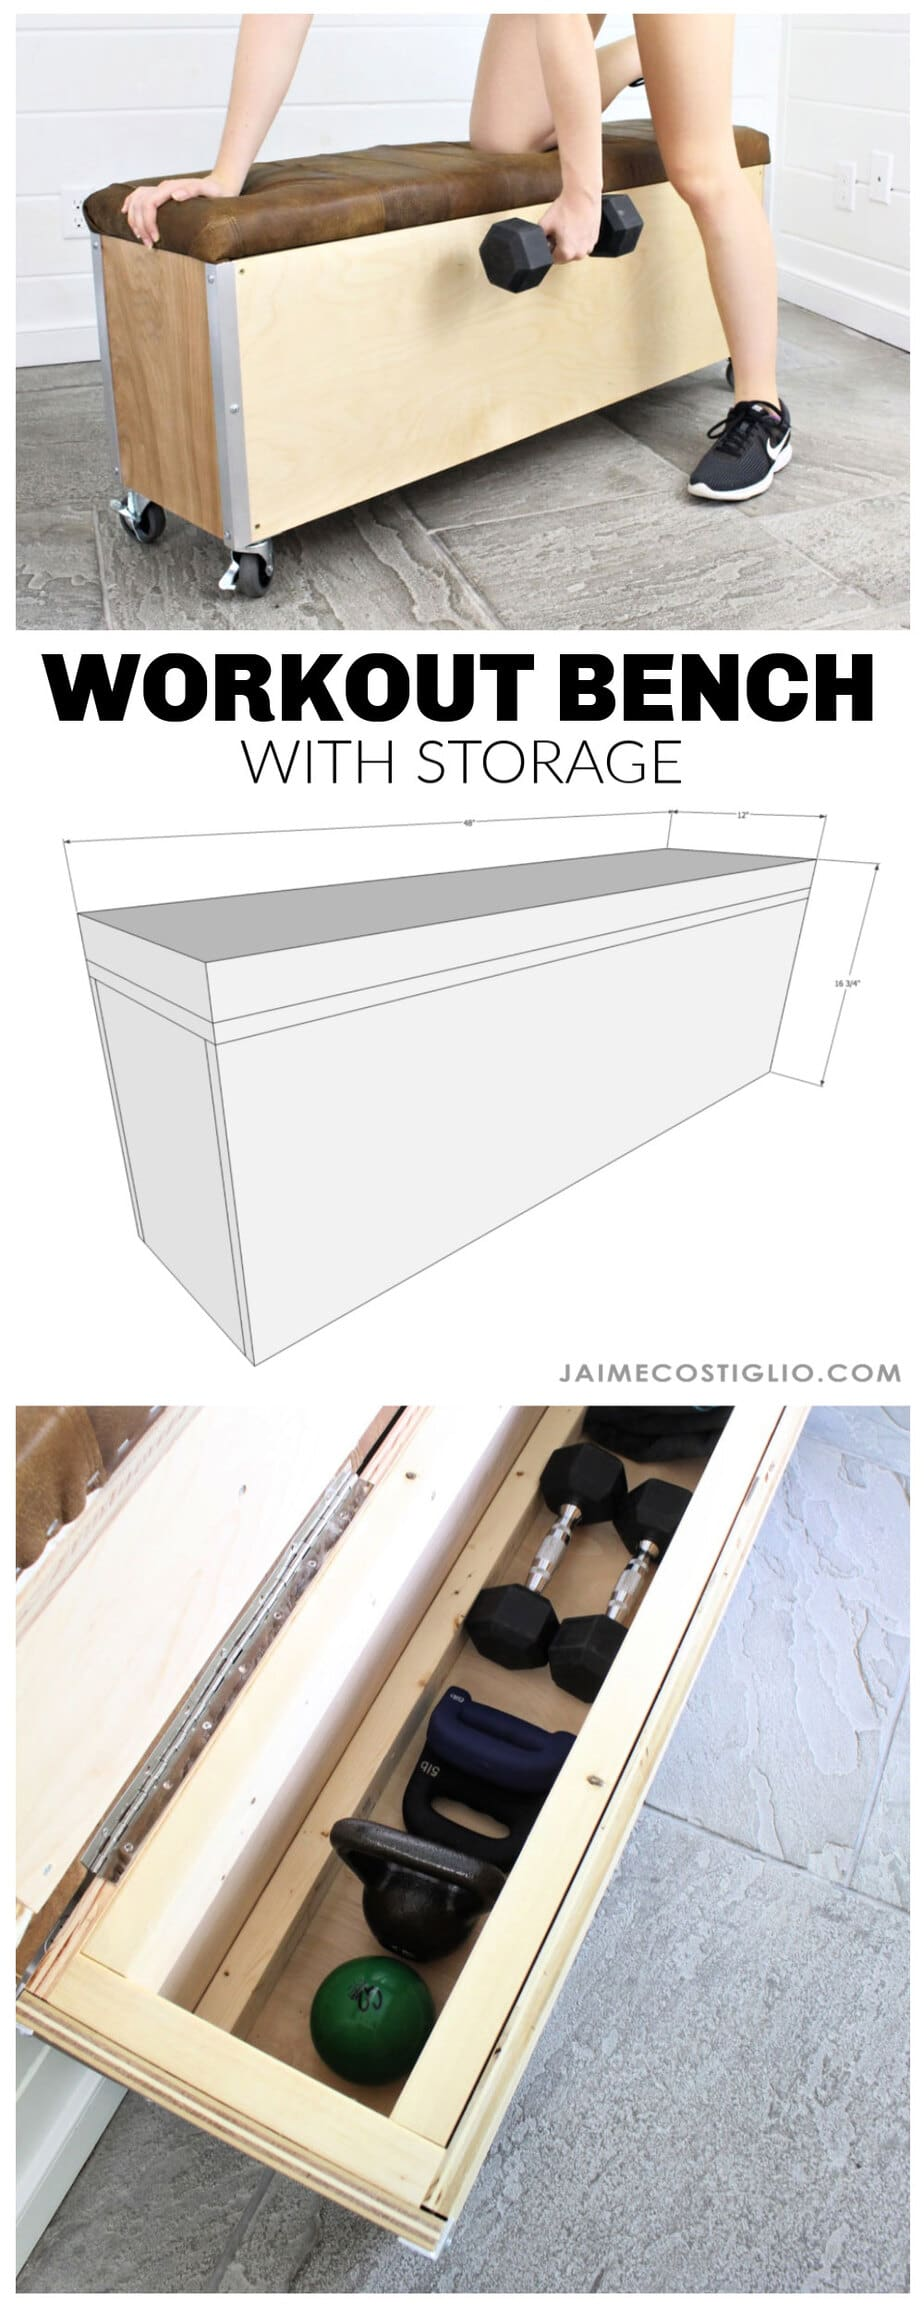 diy workout bench with storage free plans